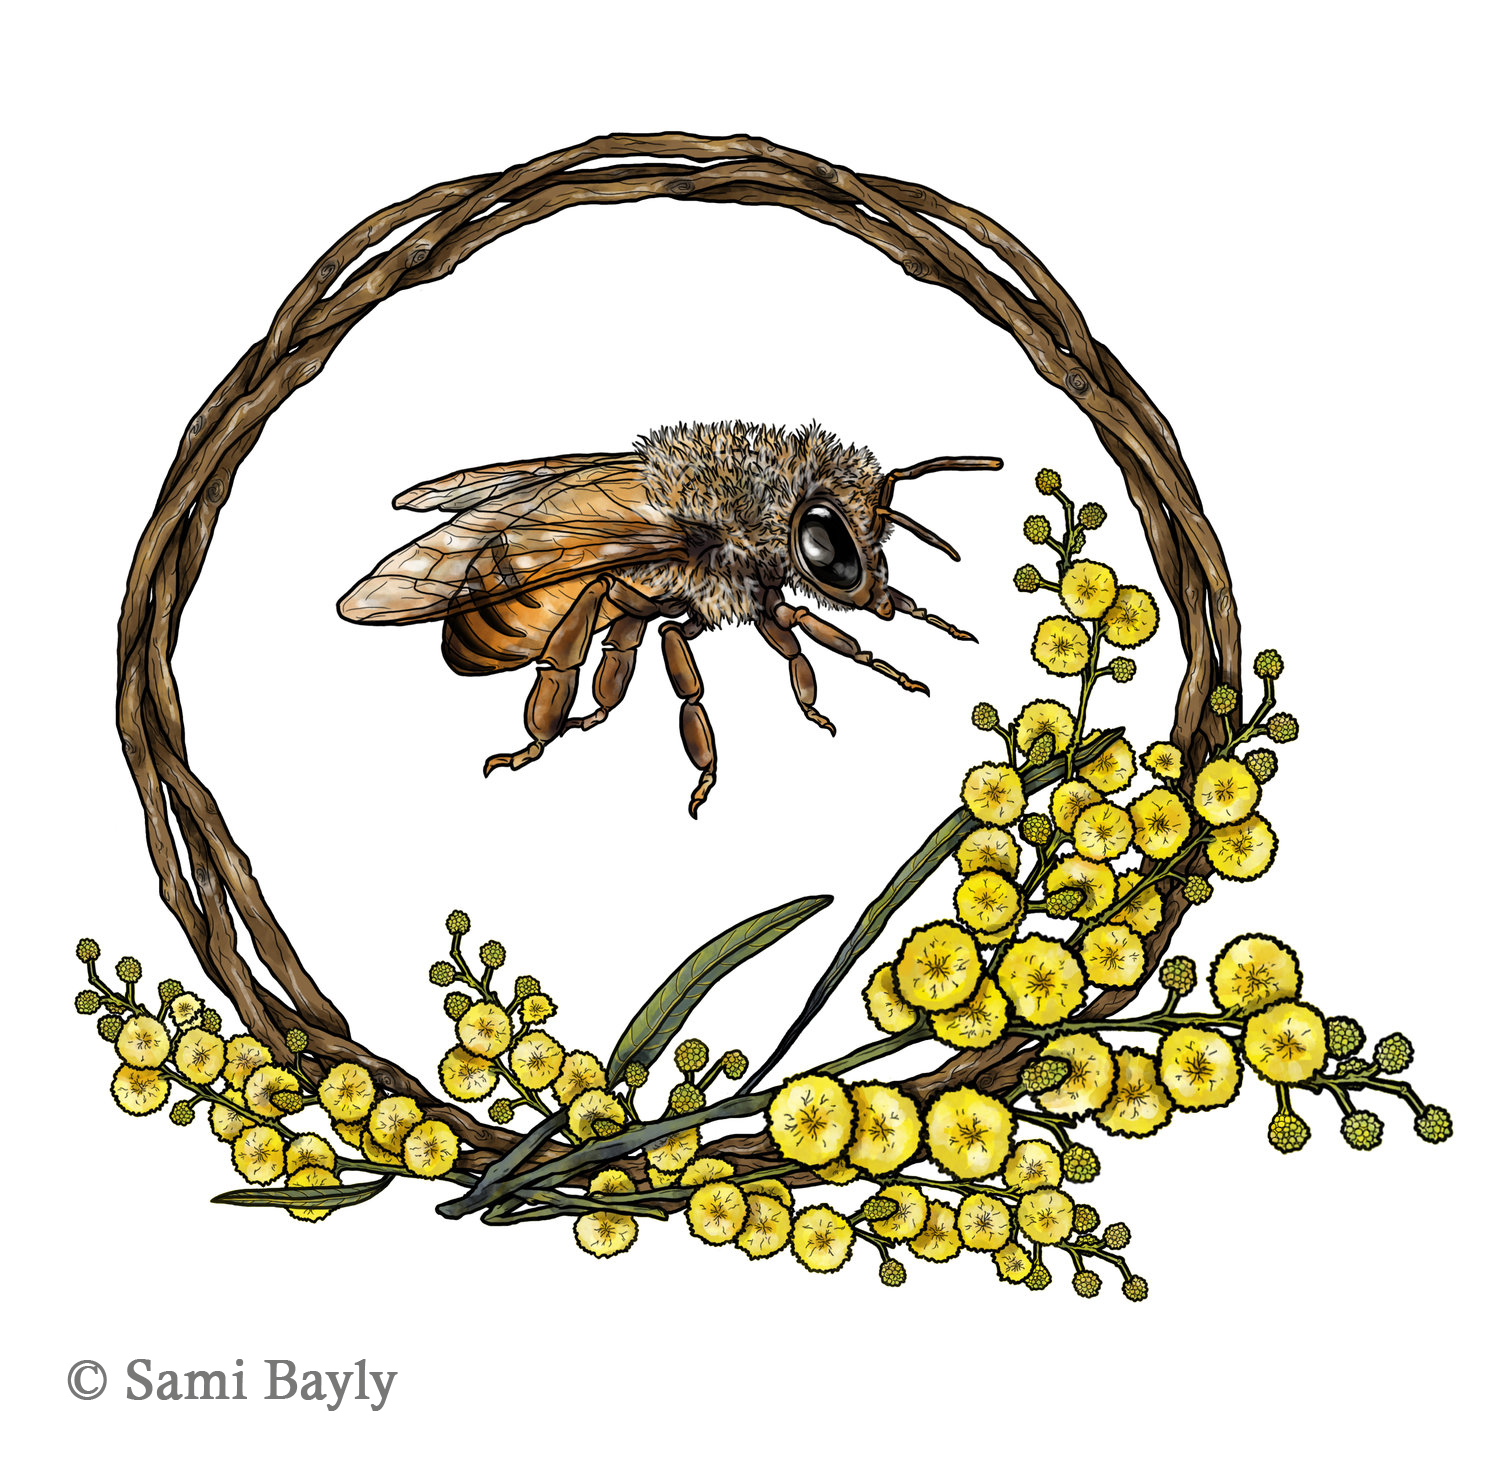 Bee Wreath Commission